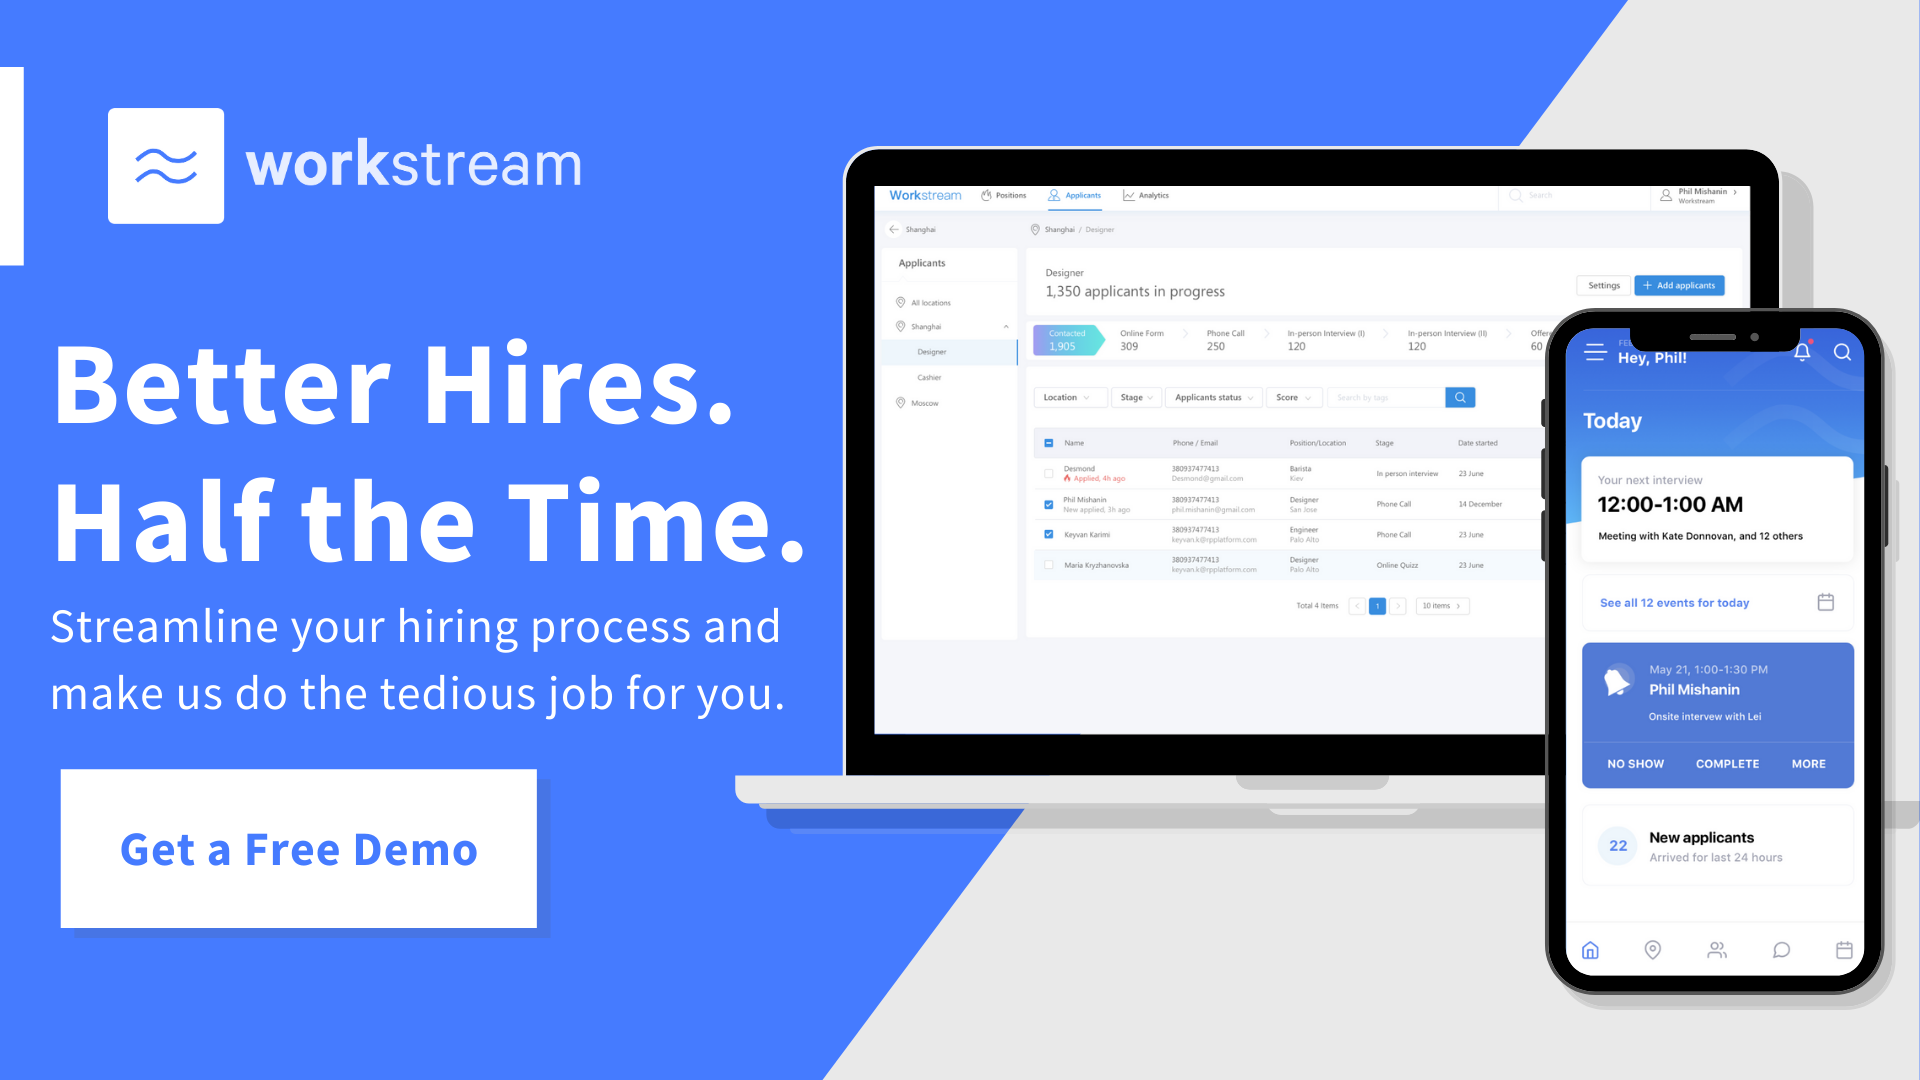 Workstream schedule a demo banner to find better hires in half the time